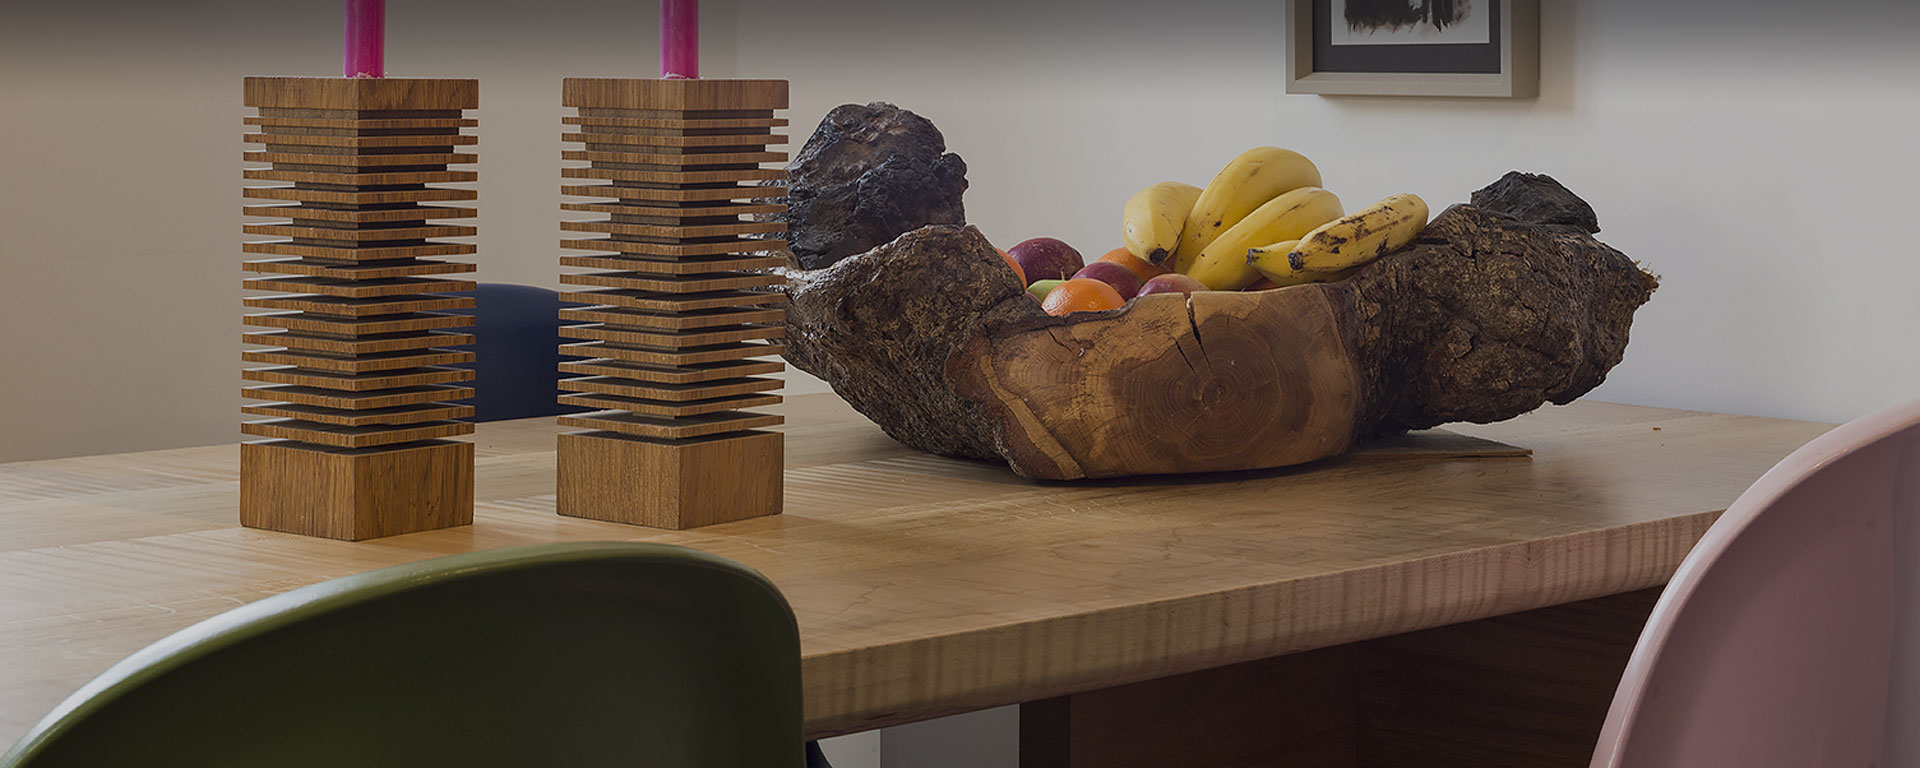 Bespoke Dining Room Table with Fruit Bowl, Brighton & Hove